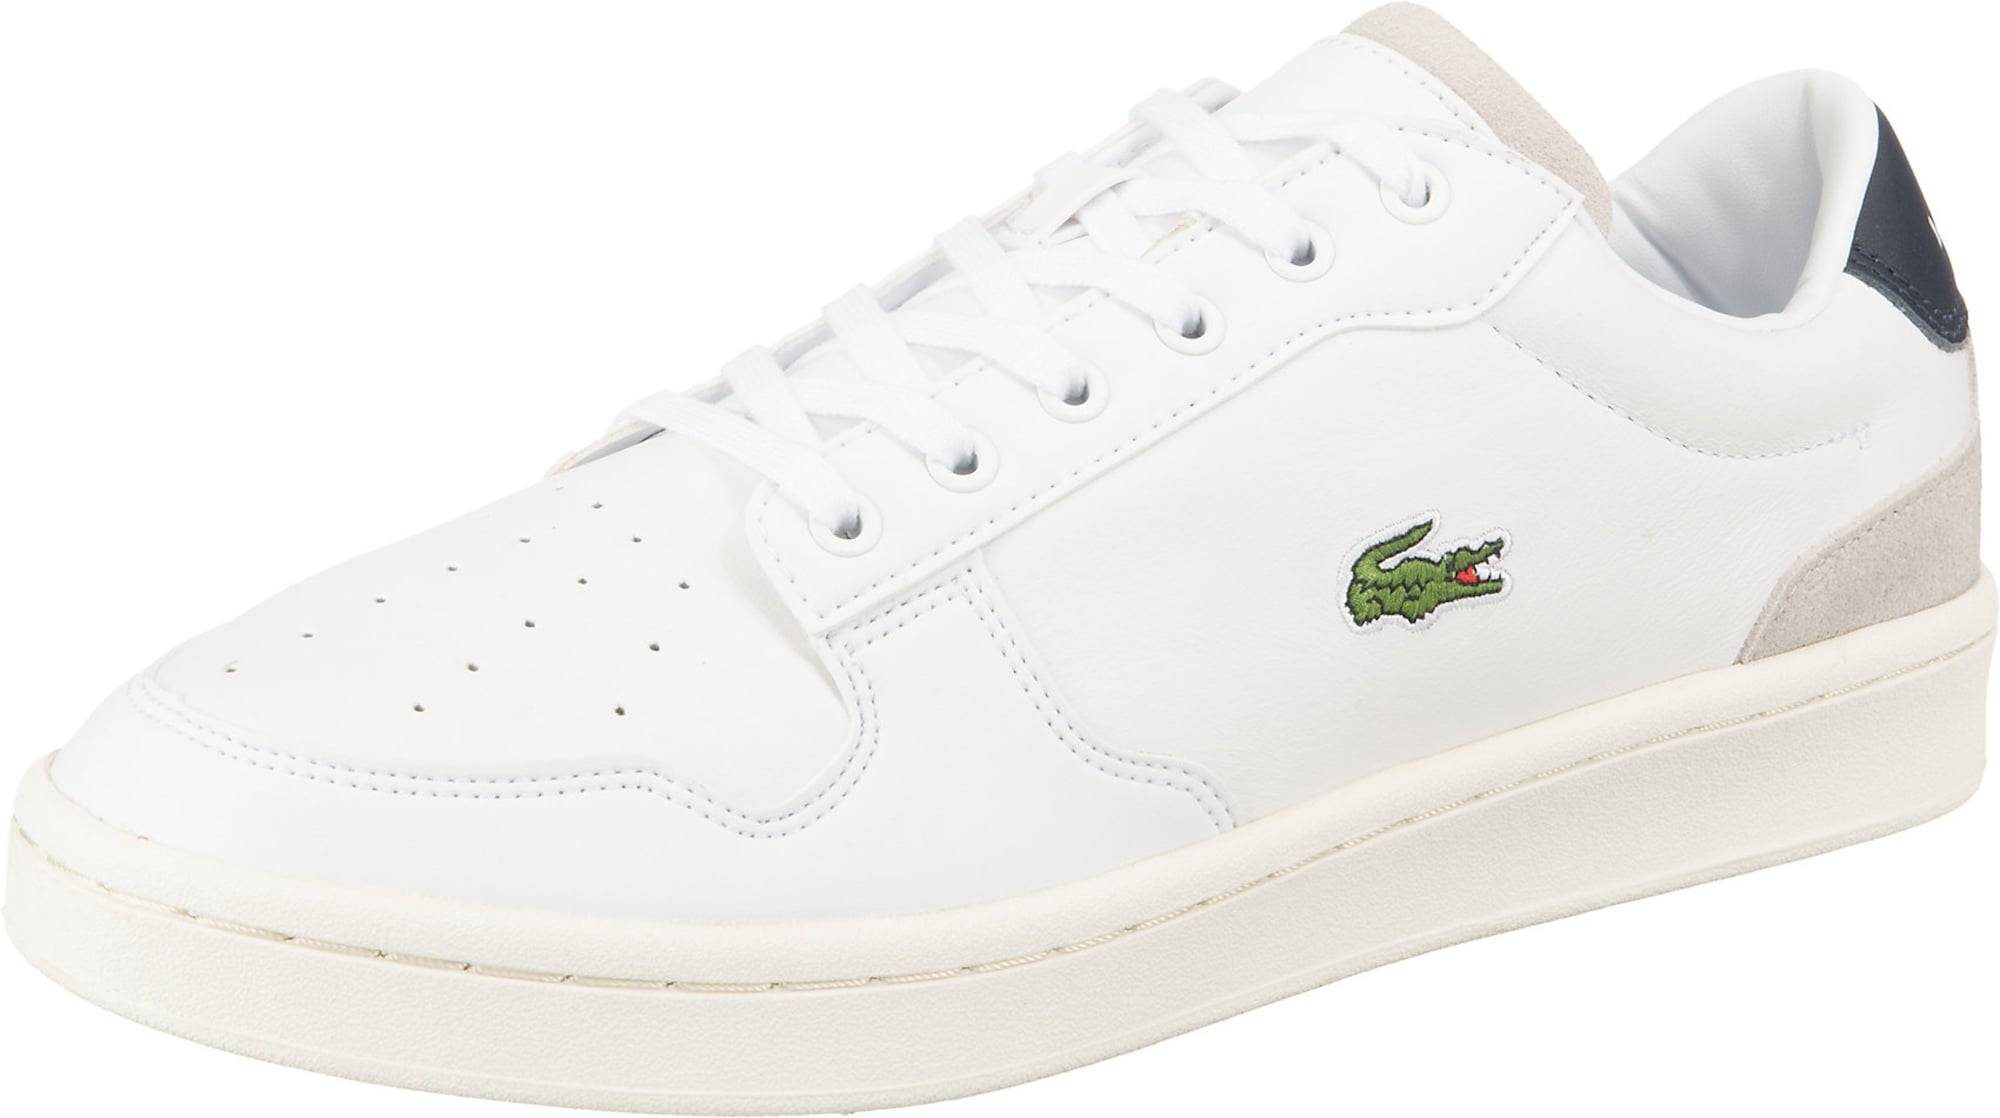 LACOSTE Baskets basses 'Masters Cup'  - Blanc - Taille: 6.5 - male